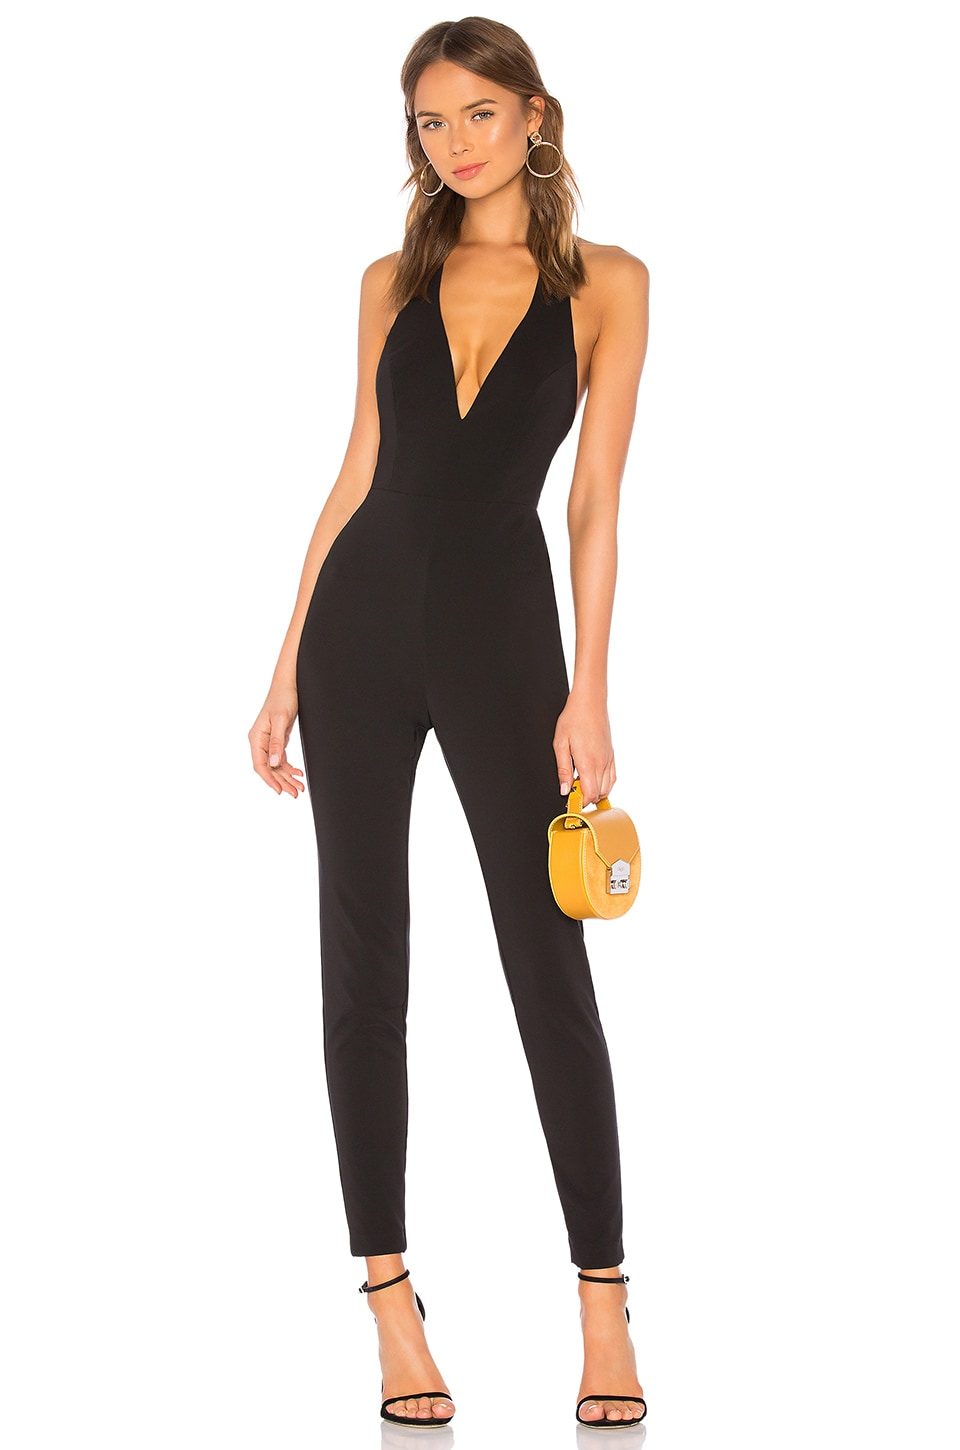 NBD Gene Catsuit in Black